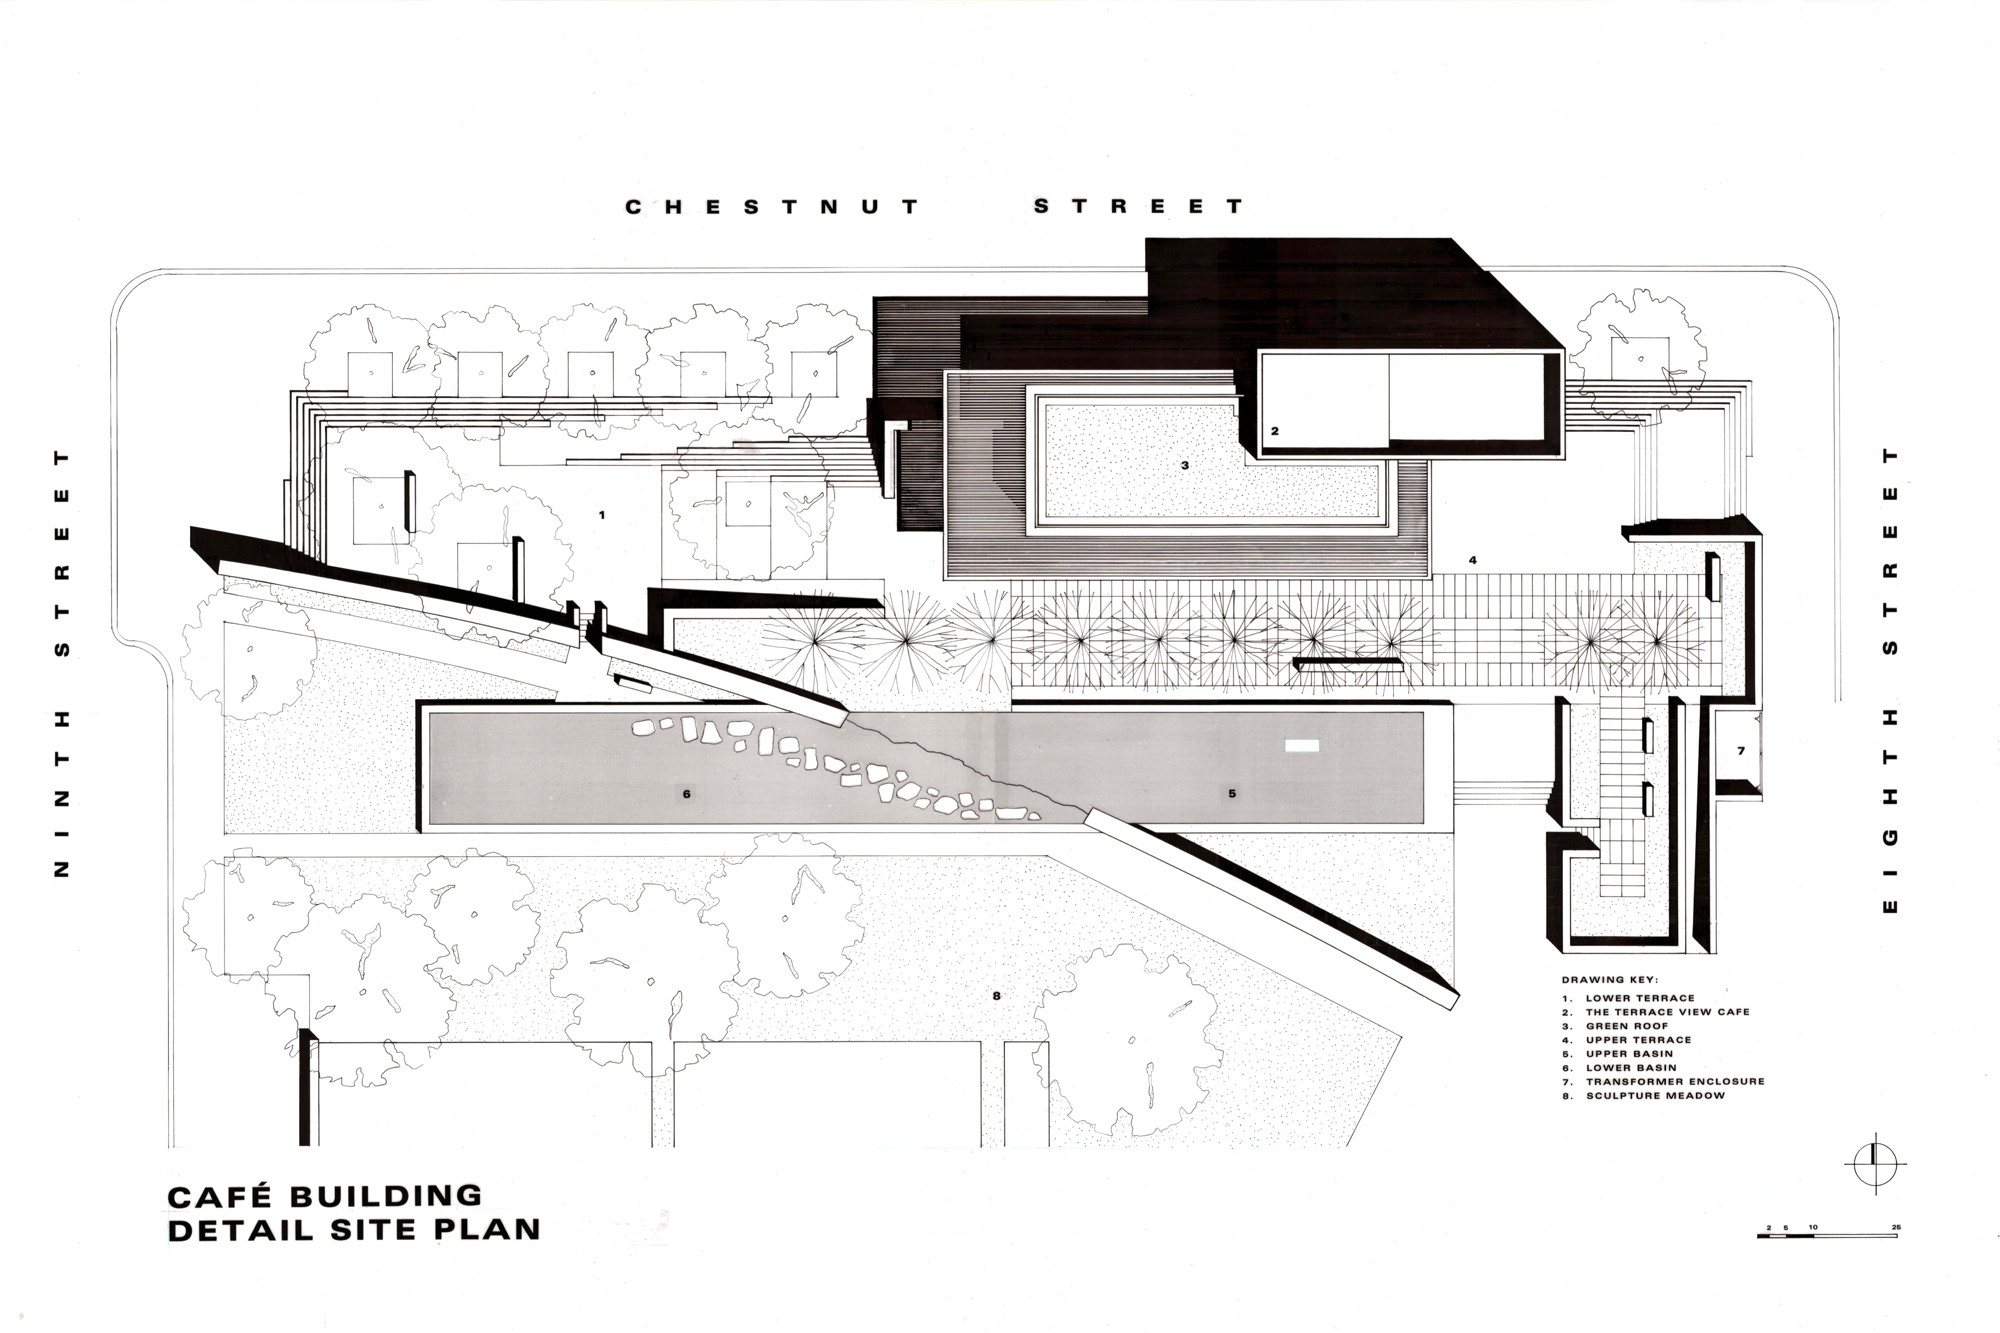 house plans architect gallery of terrace view cafe studio durham architects 24 12474